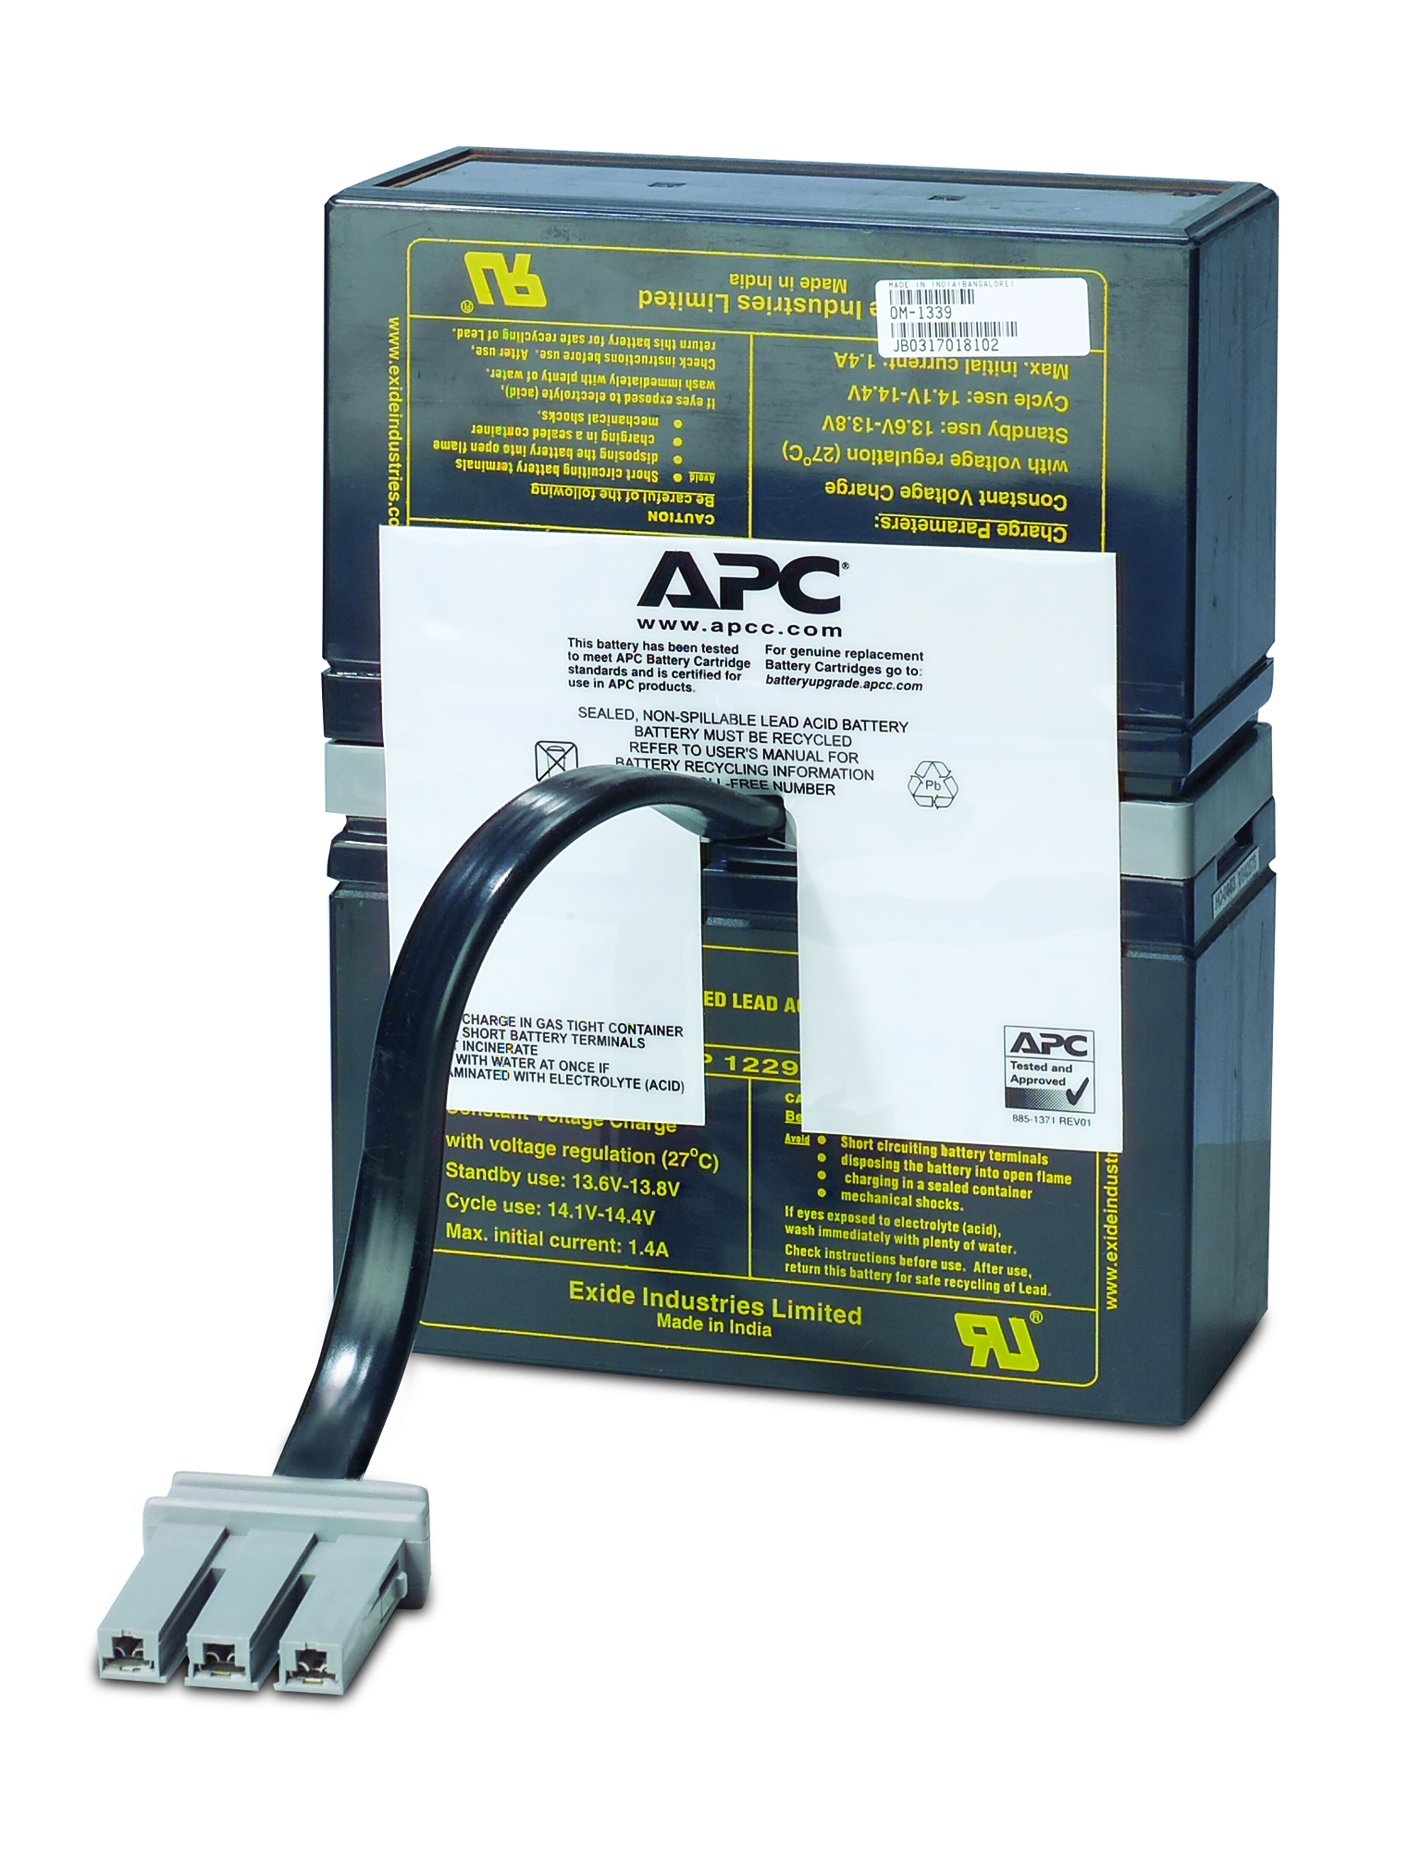 APC UPS Replacement Battery Cartridge for APC UPS Models BR1000, BX1000, BN1050 and select others (RBC32)